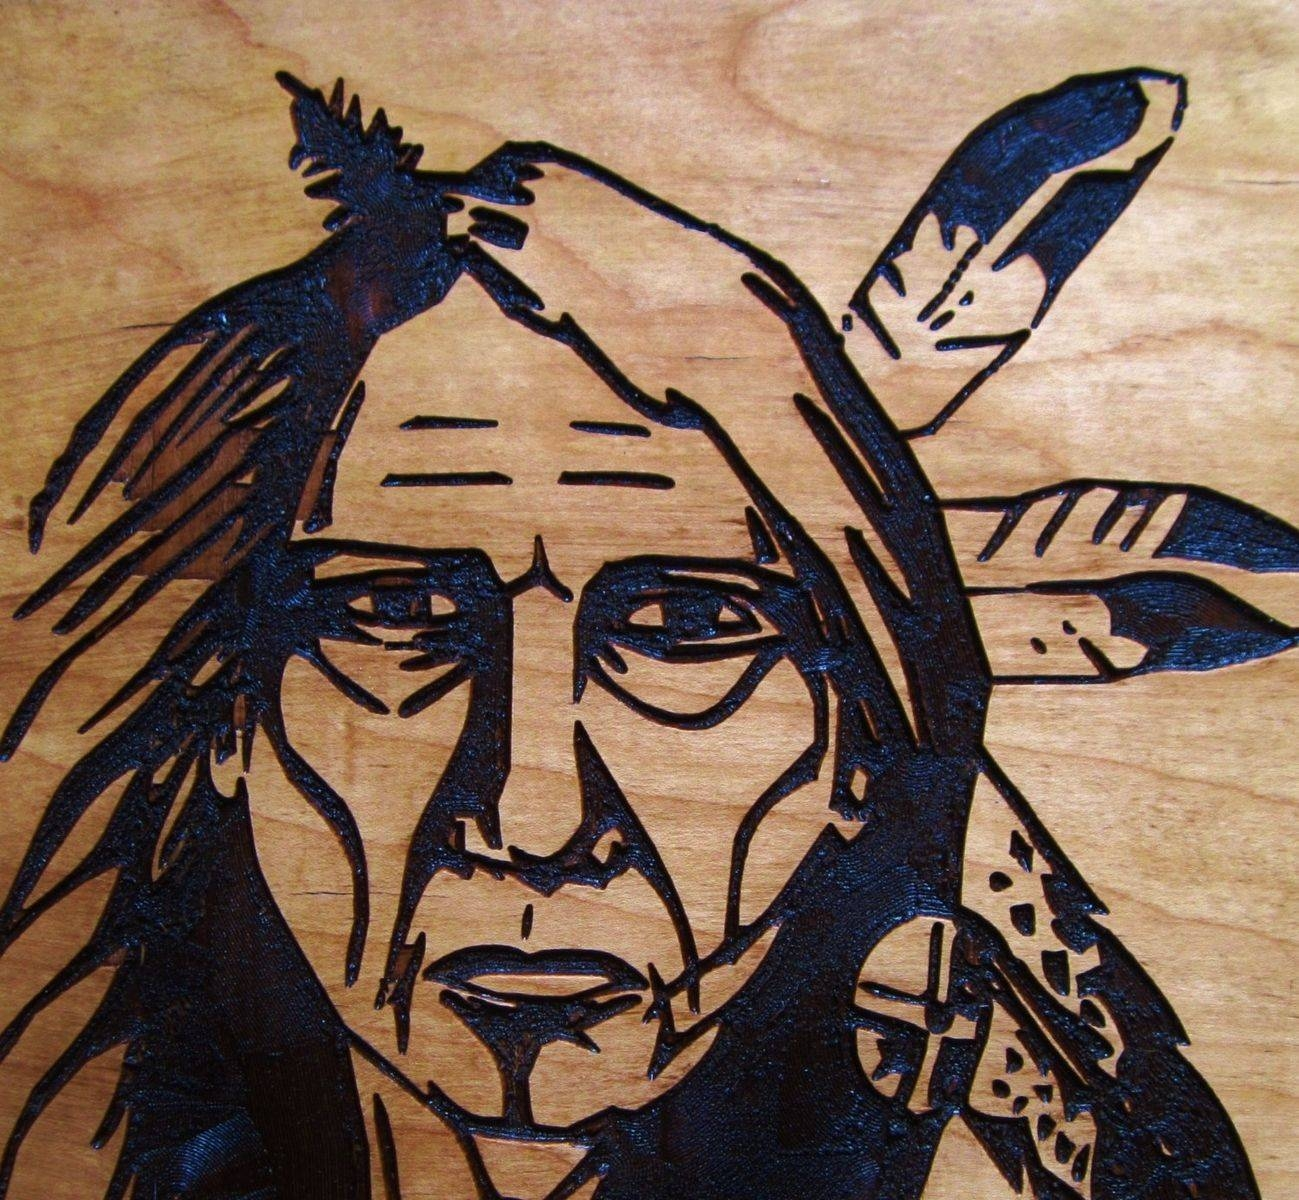 Hand Crafted Native American Indian Elder Woman Handmade Wood Pertaining To Most Recent Native American Wall Art (View 14 of 25)